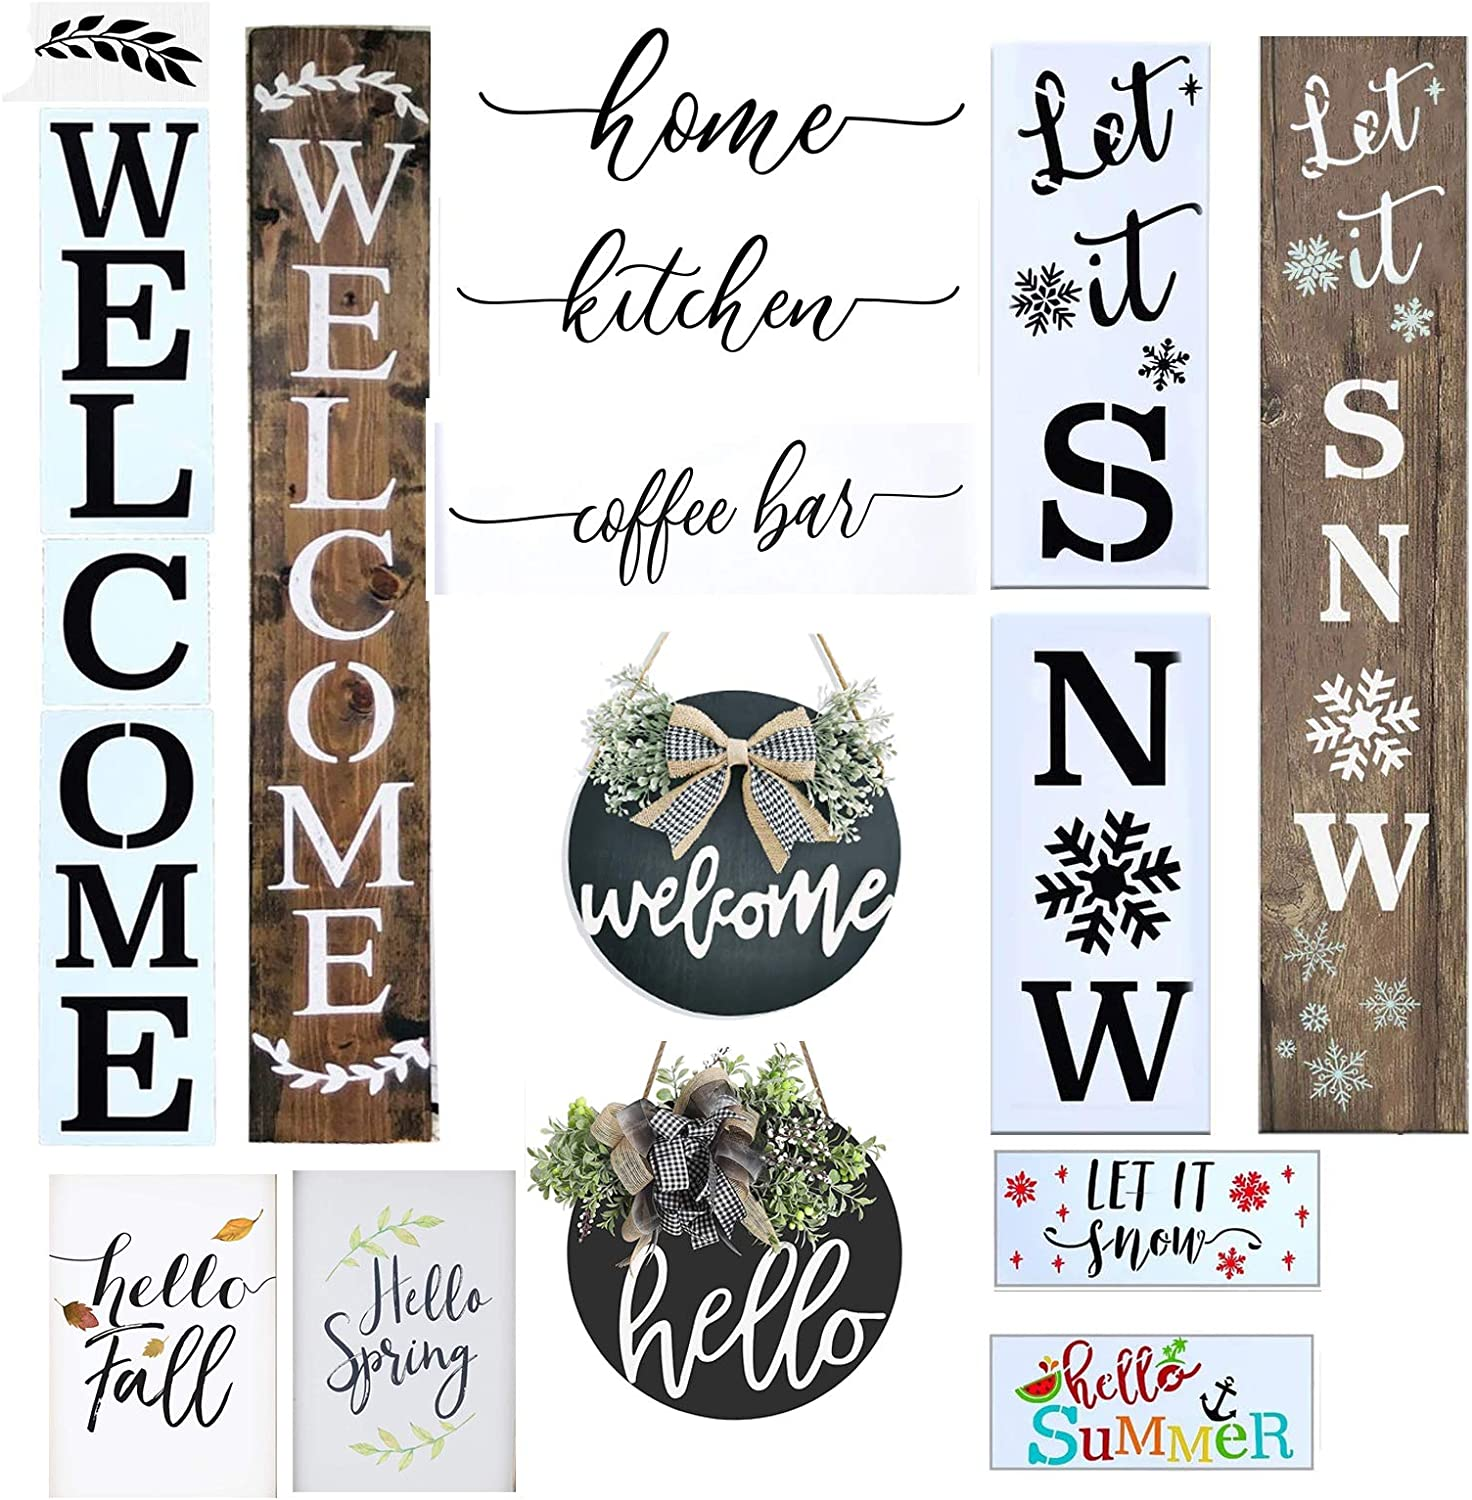 Welcome Stencil for Painting on Wood and More, Reusable Stencils Welcome Home Seasonal Sunflower Dog Paw Sign Stencils, Perfect Fall Decor for Your Home, Front Door, Porch or Outside Decor (14PCS)